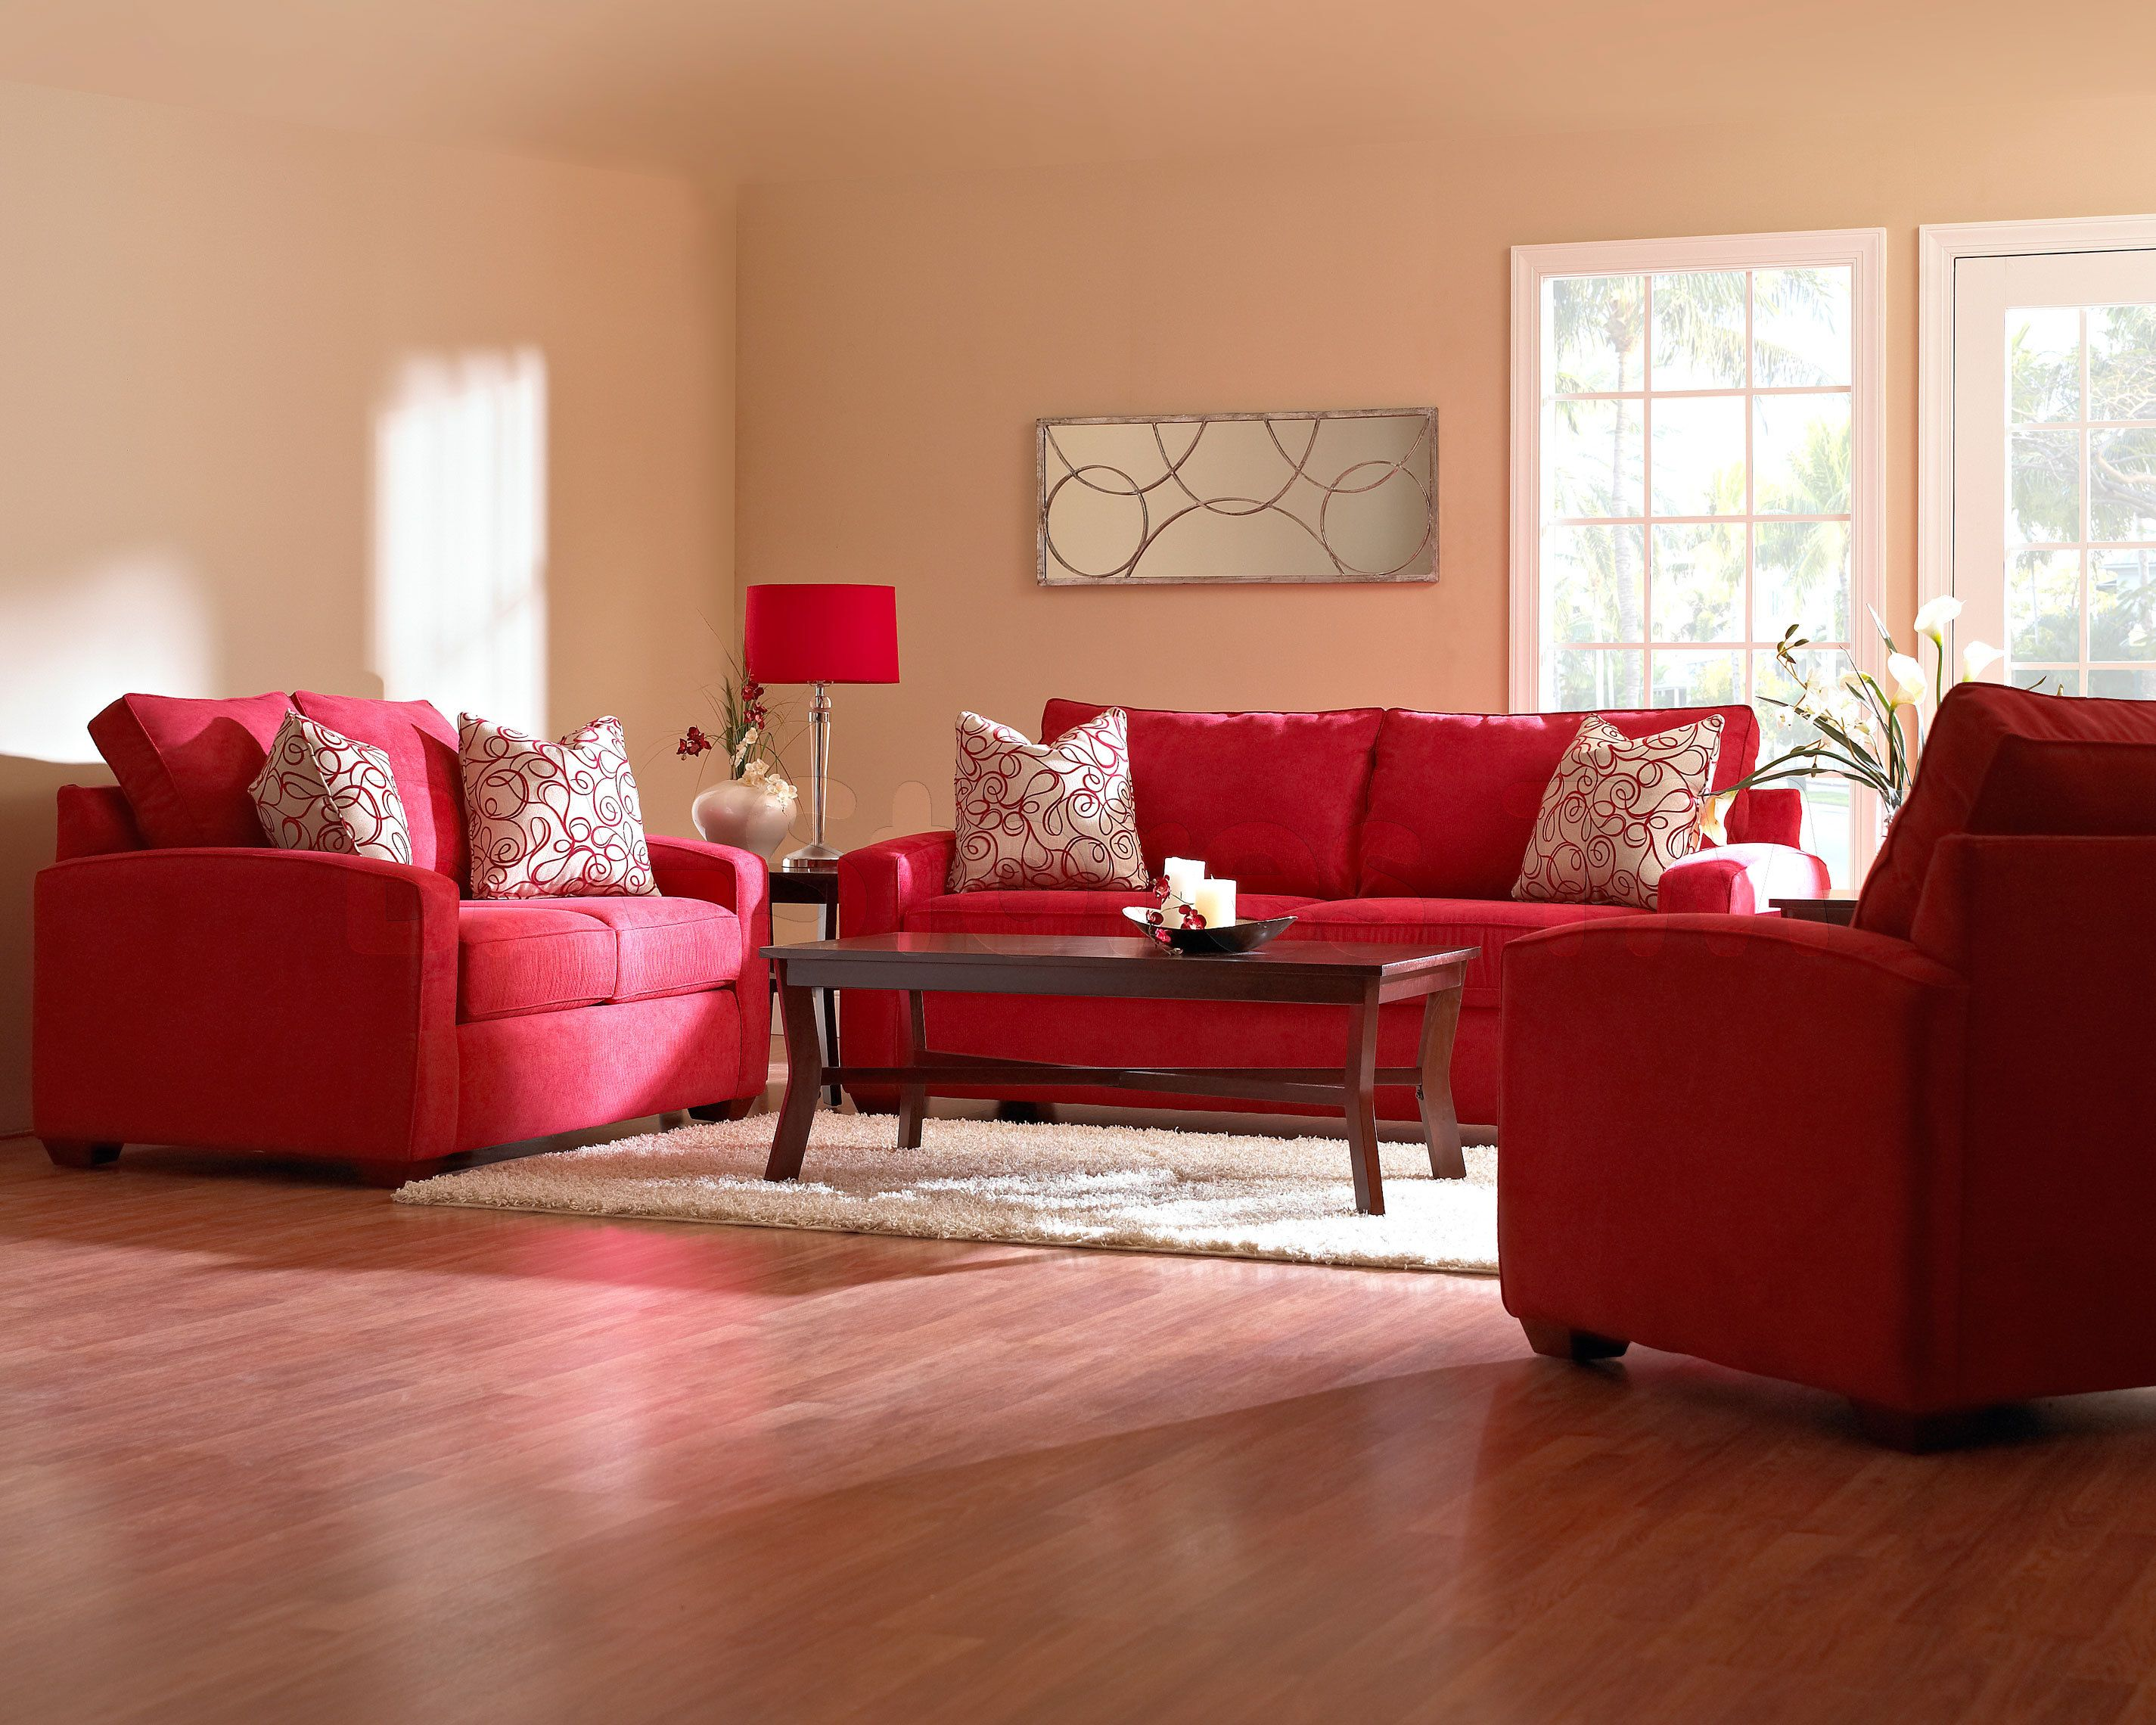 Red Living Room: Image Result For Living Rooms With Red Furniture